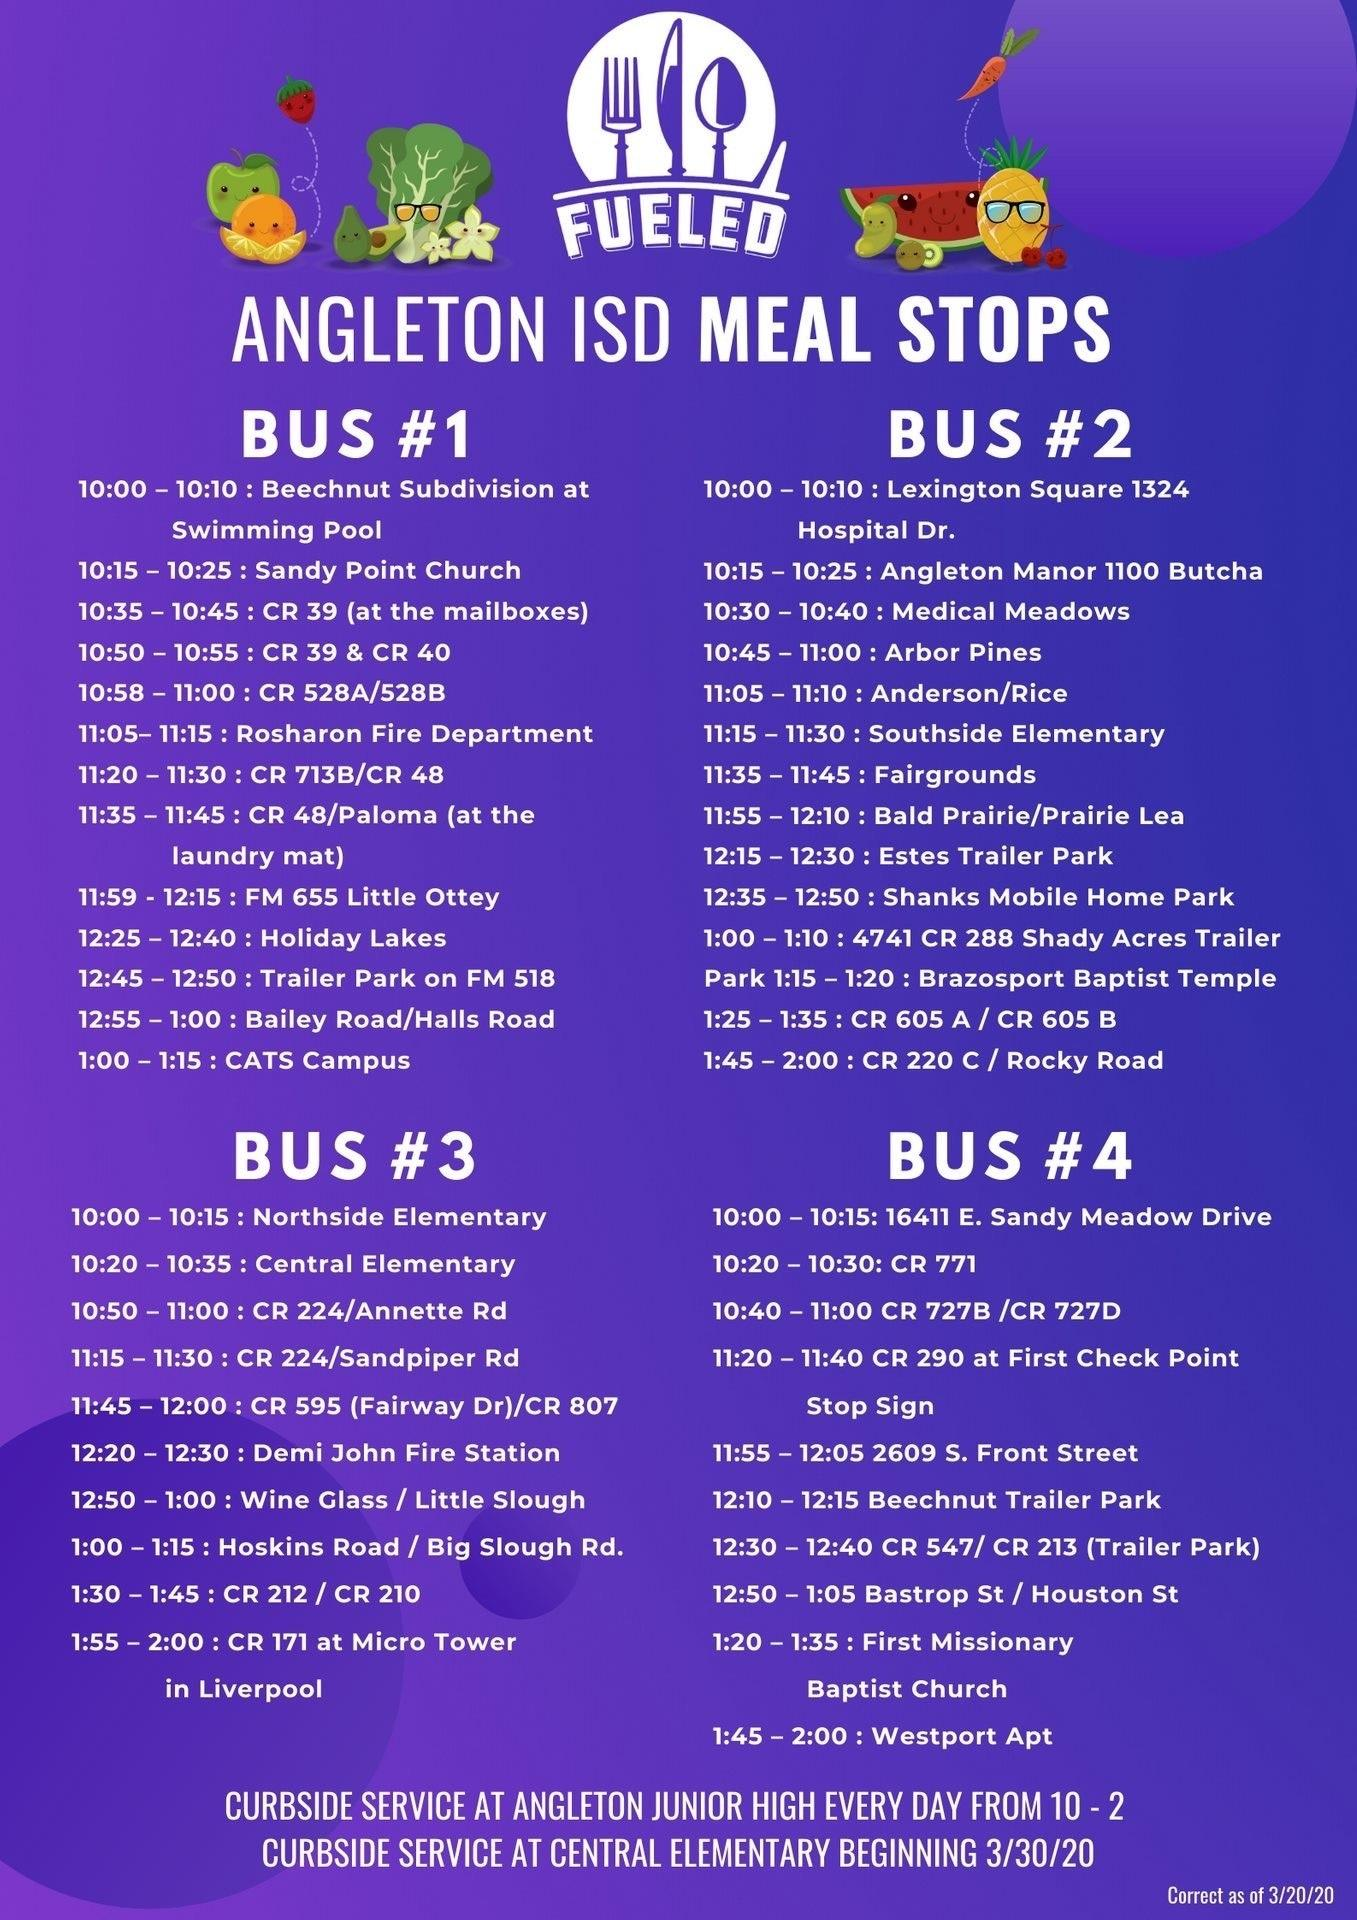 Angleton Bus Routs